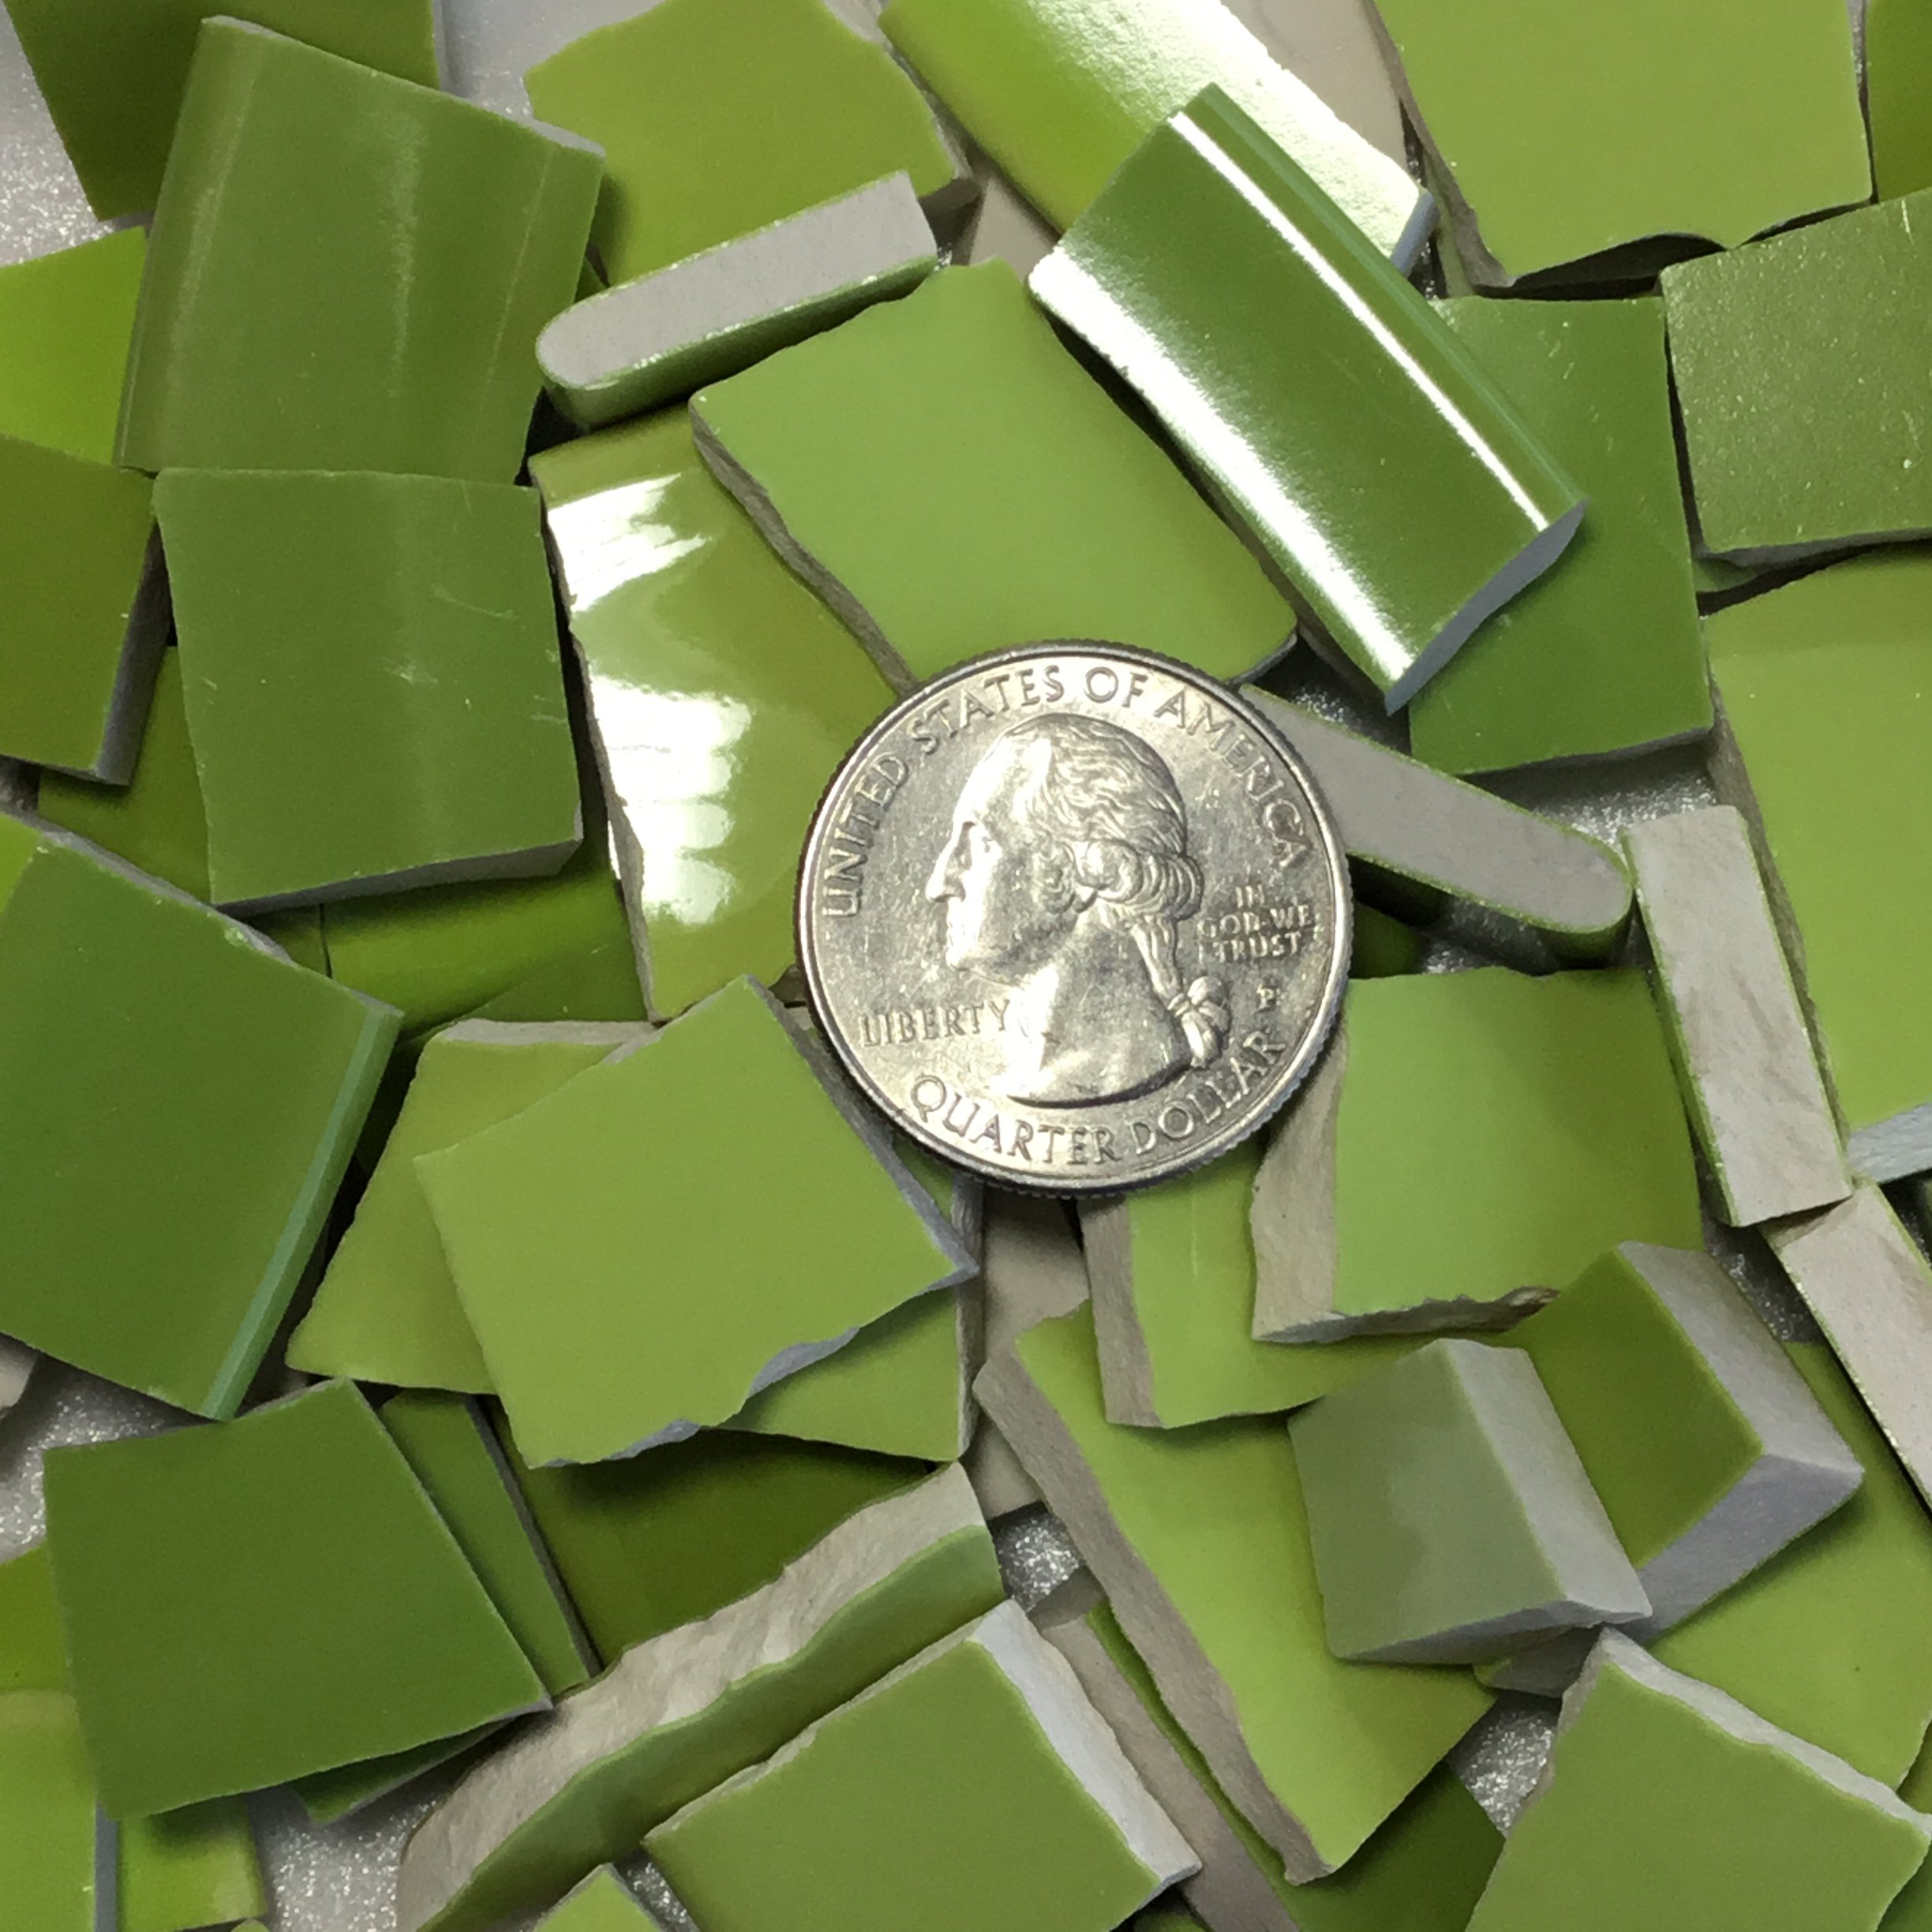 MOSAIC TILE ~ HAND CUT Dish China / Ceramic Pieces ~ Supply for Mosaics Arts & Crafts ~ 100 Shades of Chartreuse Green Tiles (T#381)